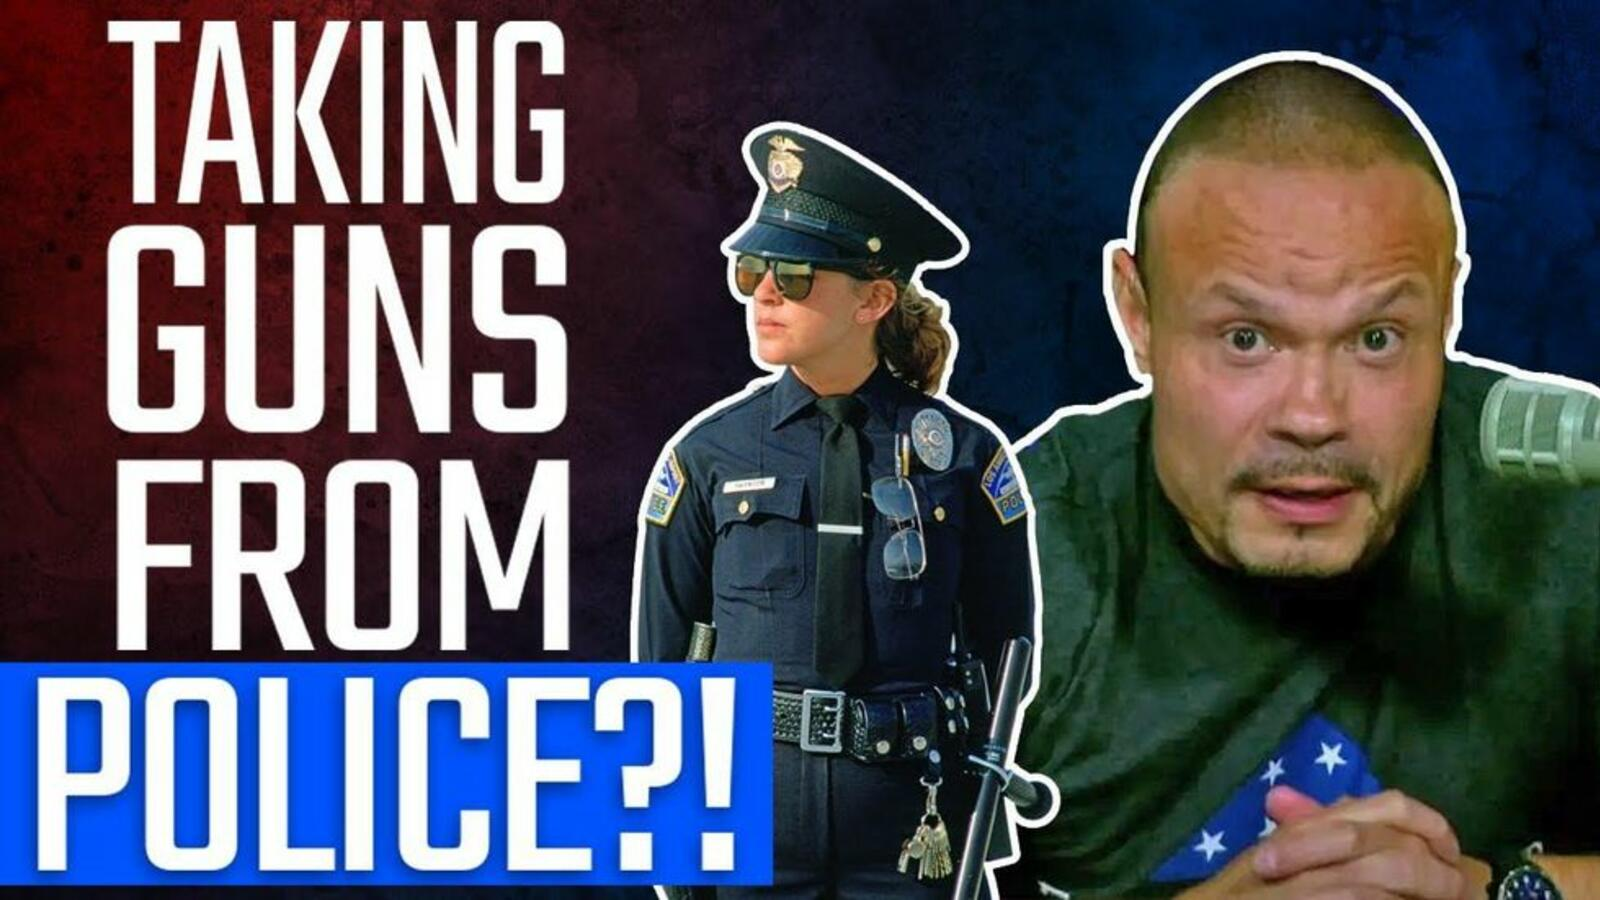 Dan Bongino SOUNDS OFF against latest 'STUPIDITY' on police & guns